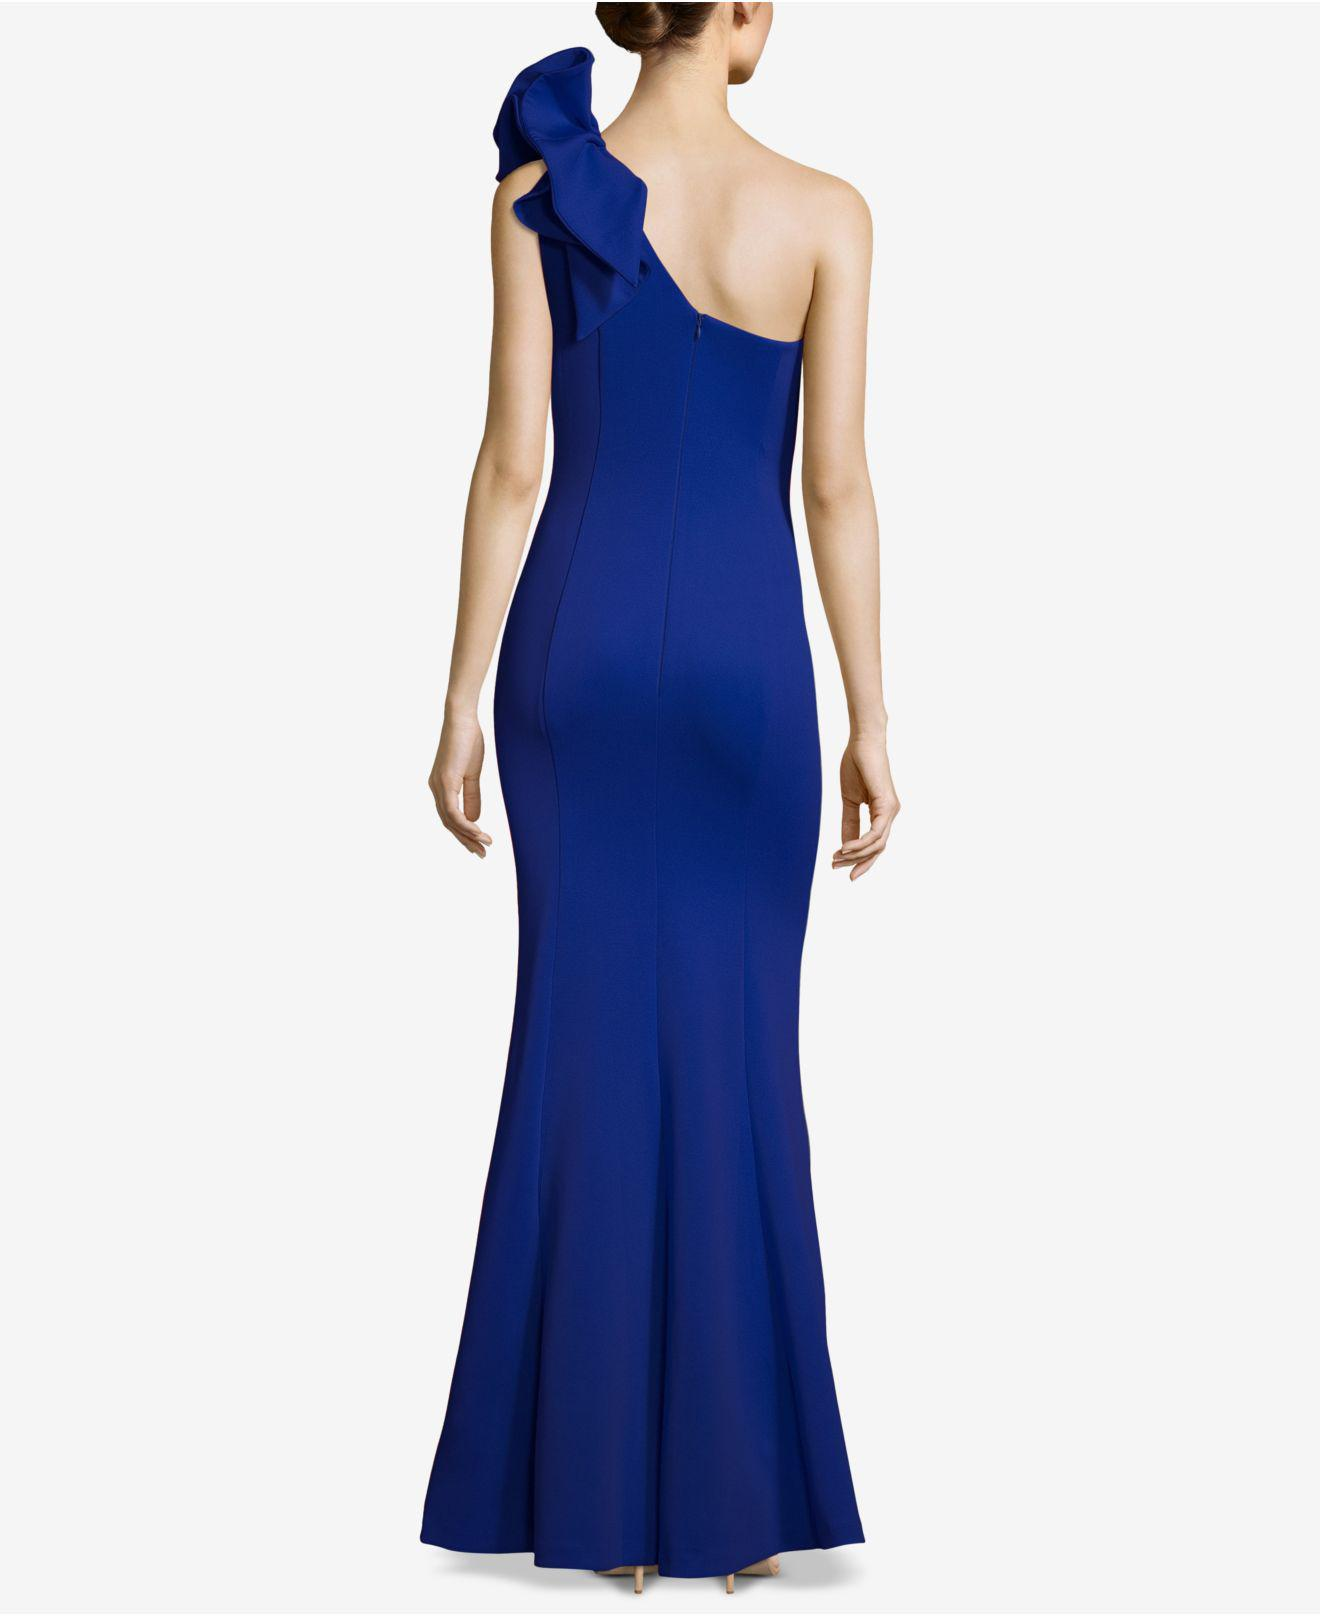 55d5538d Betsy & Adam One-shoulder Ruffled Scuba Gown in Blue - Save 15% - Lyst